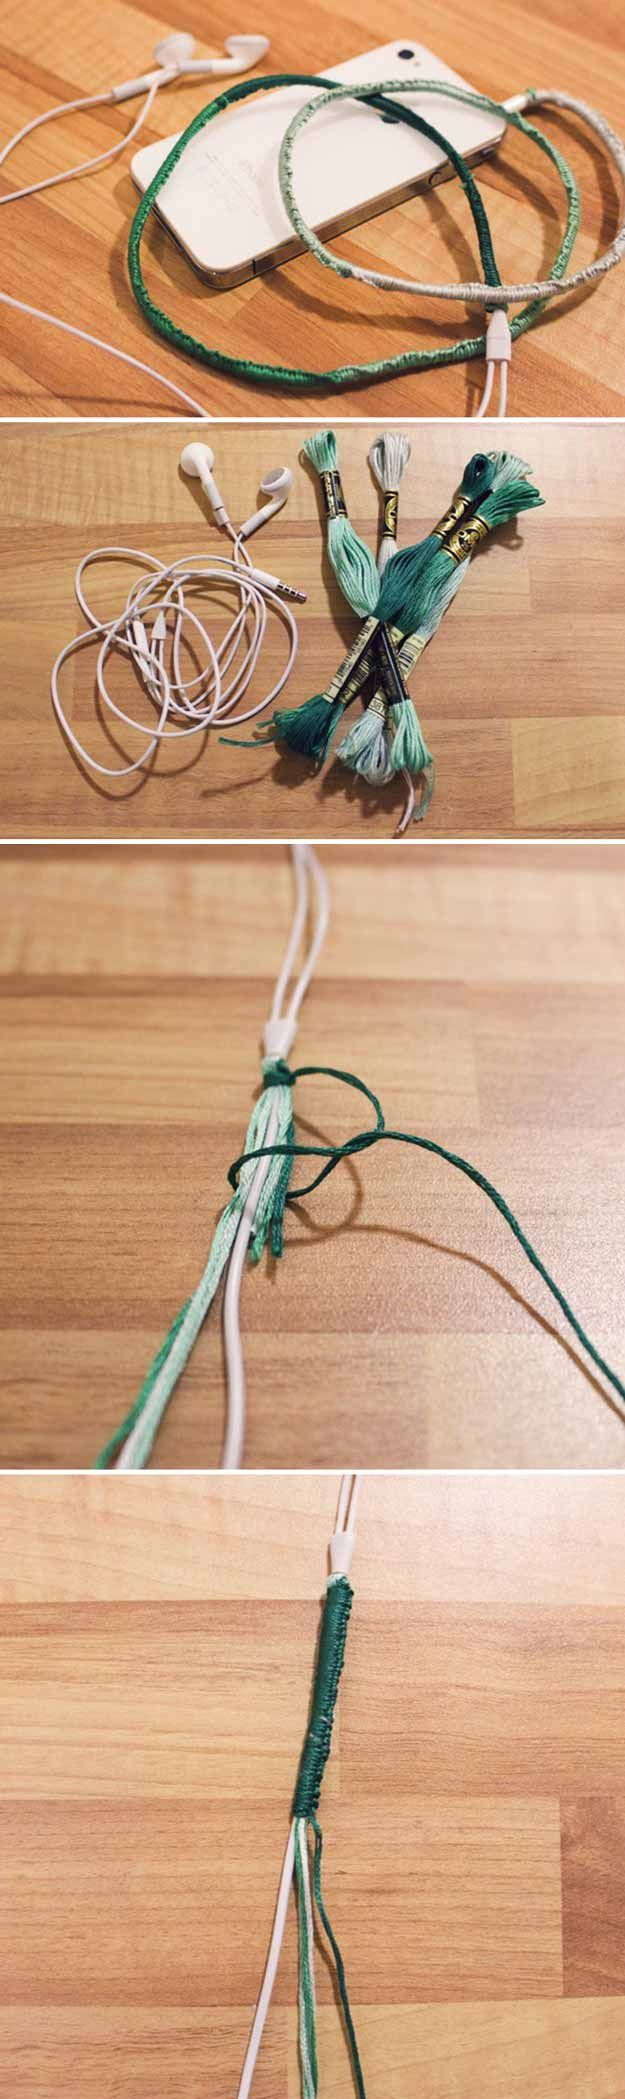 Headphone Cover- In case if your white headphone cable gets dirty...